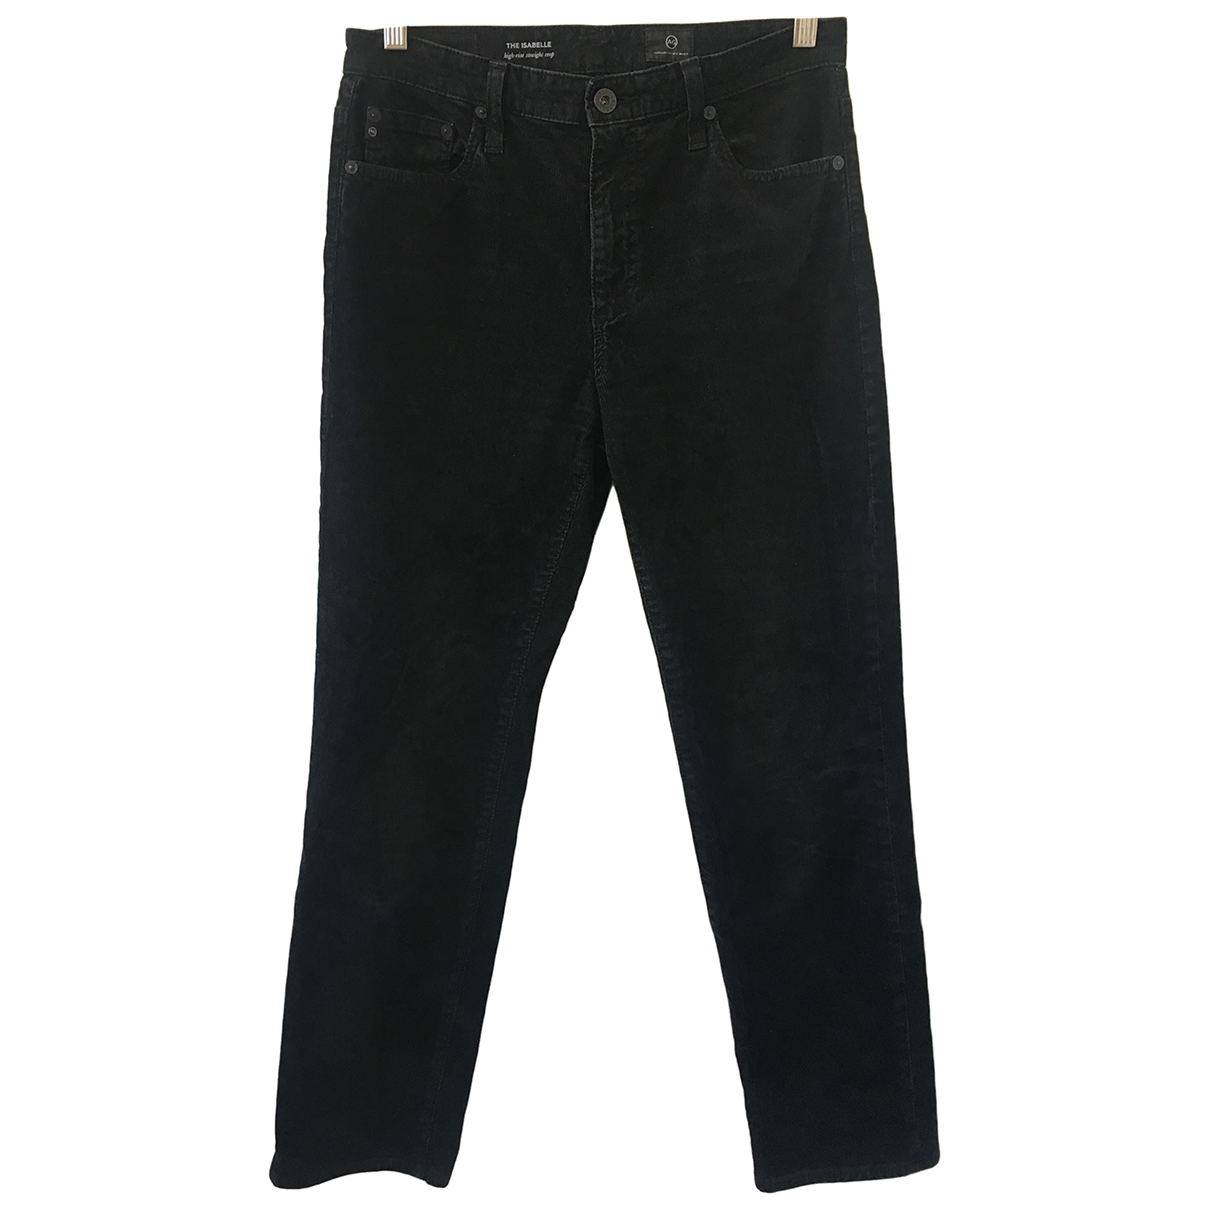 Ag Adriano Goldschmied \N Black Cotton Jeans for Women 27 US